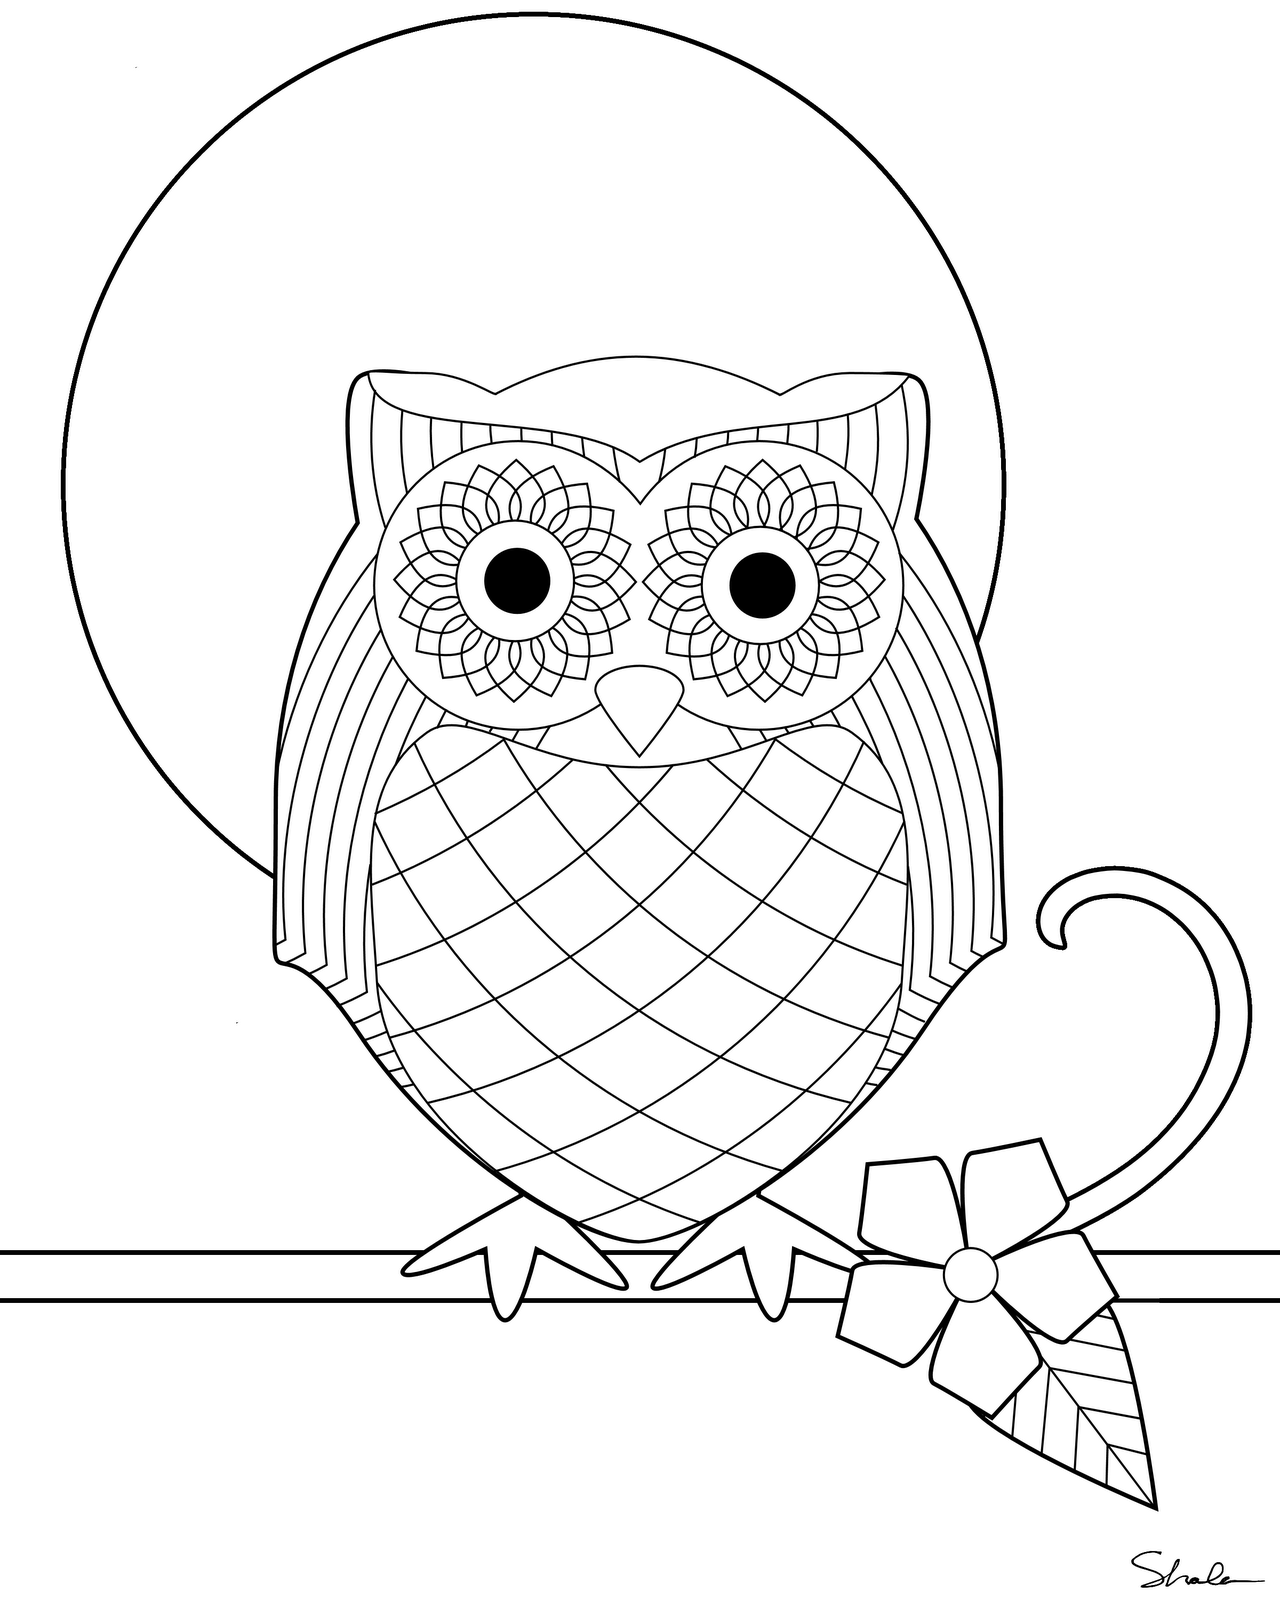 coloring owl pictures to colour 25 new free printable coloring pages for kids pictures coloring owl to colour